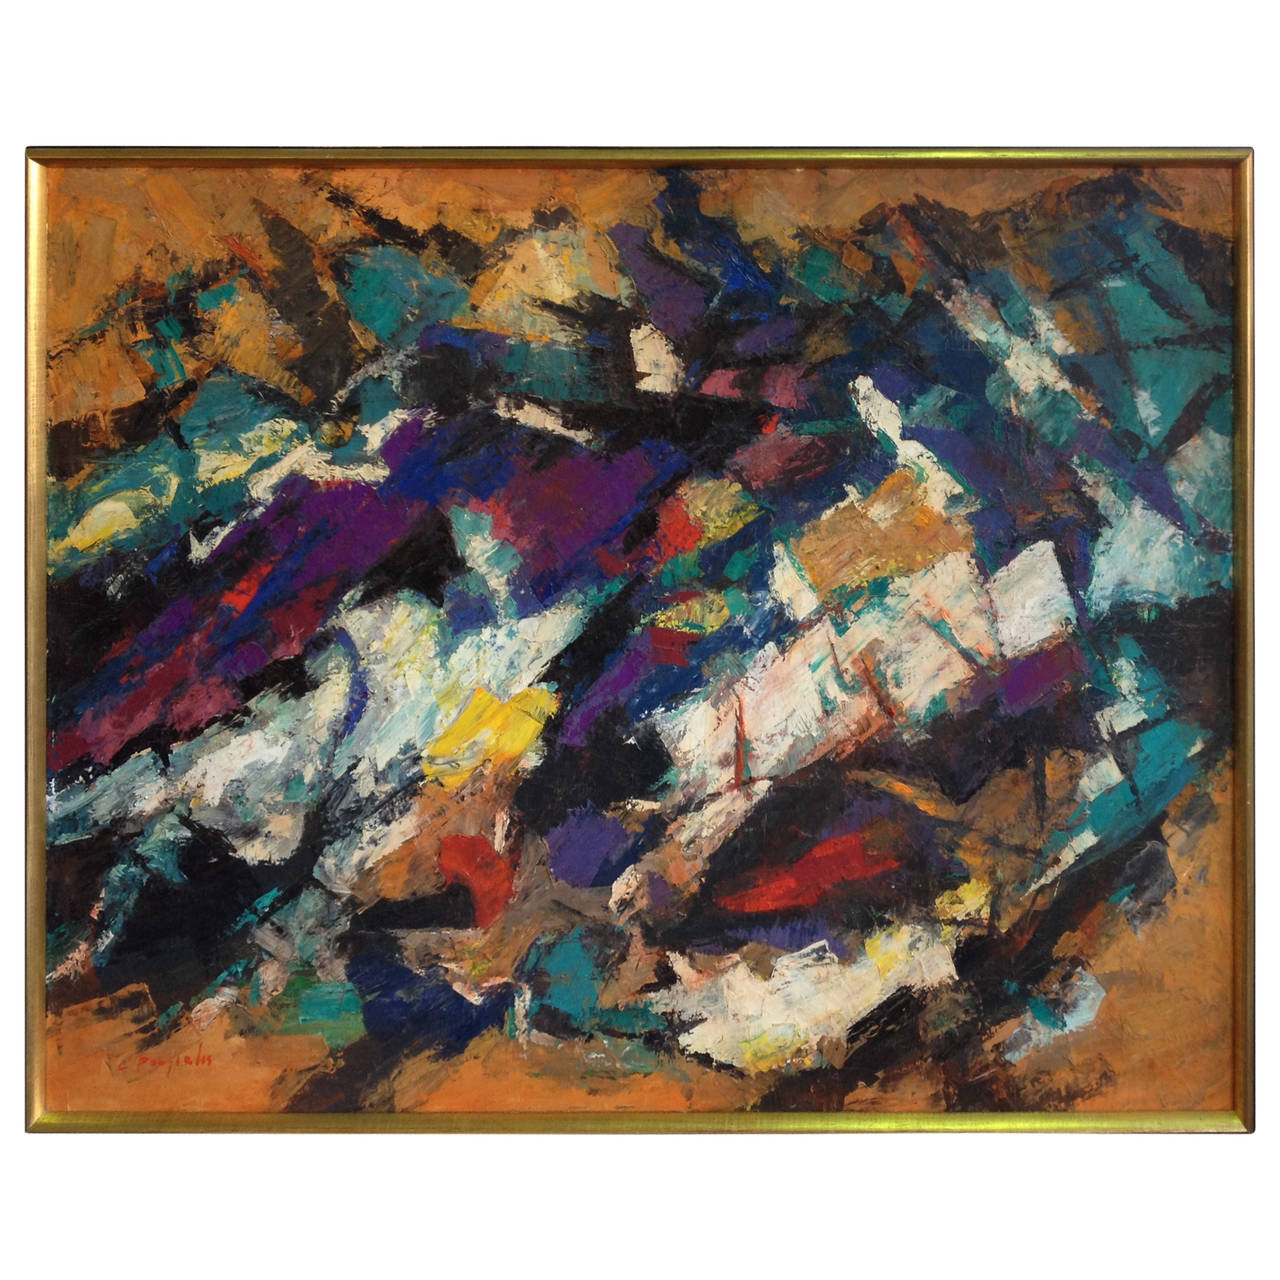 Abstract Oil Painting by Constantine Pougialis